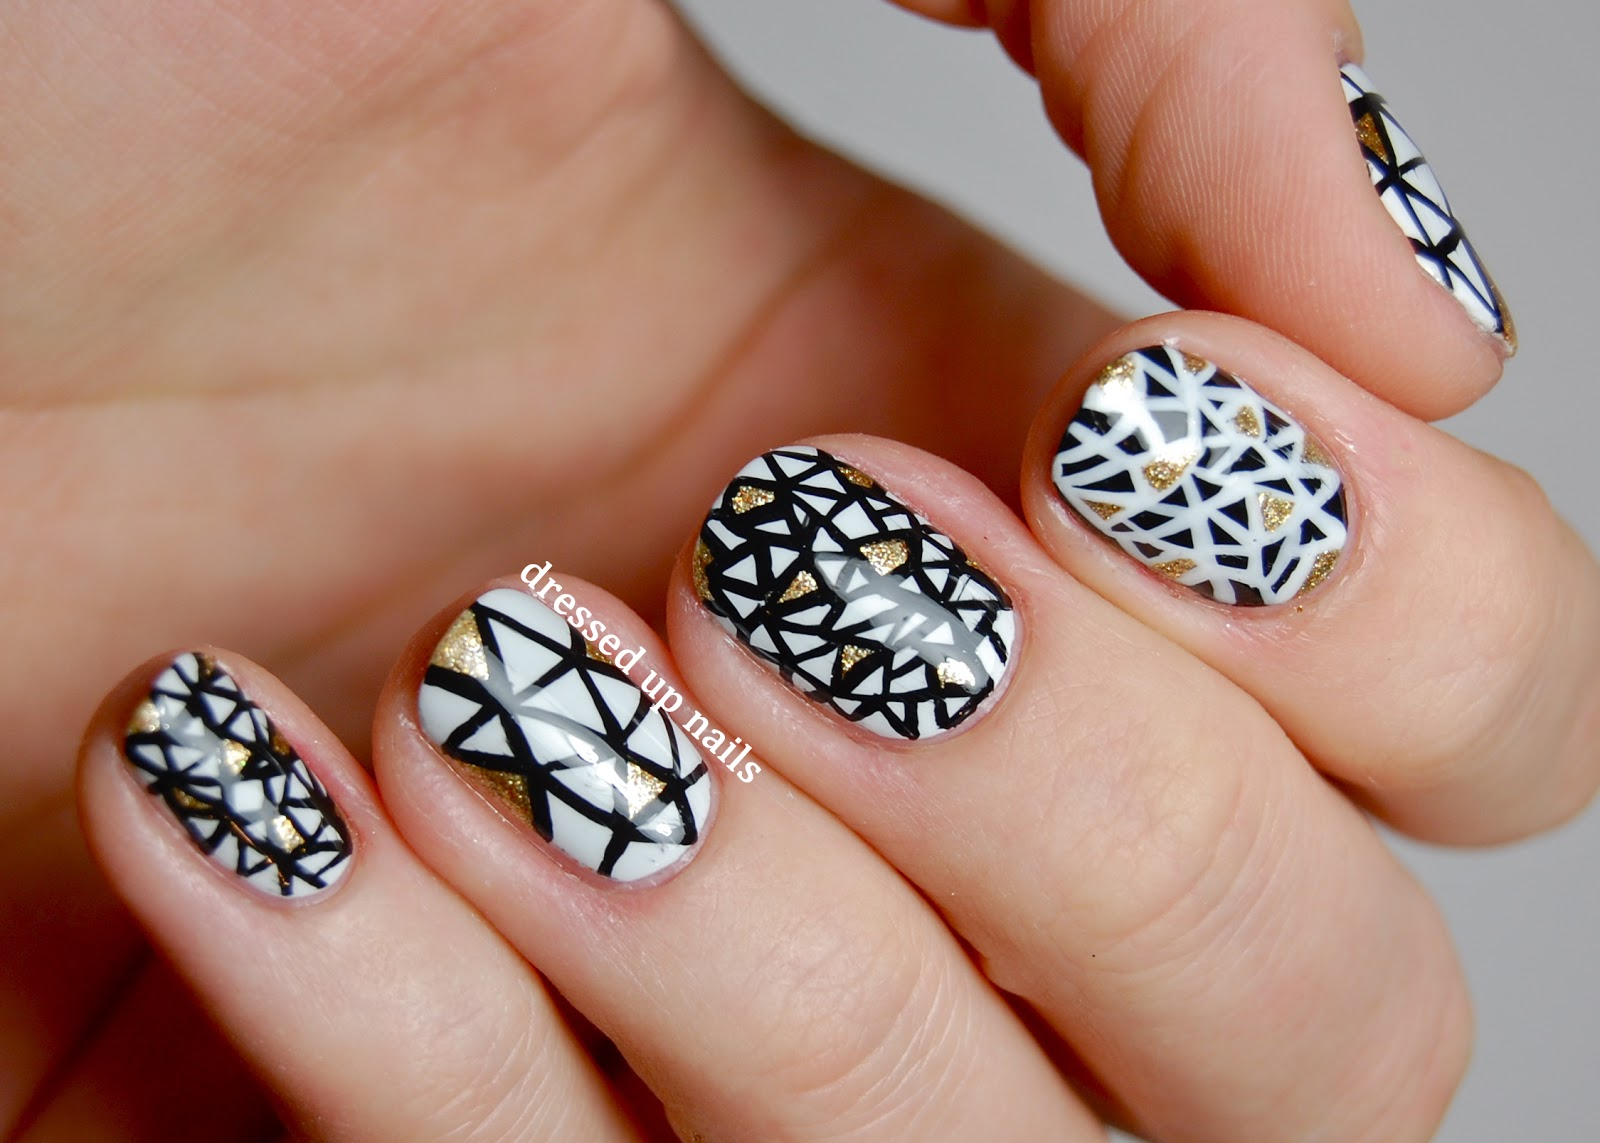 Nail shapes | Fashion & tricks